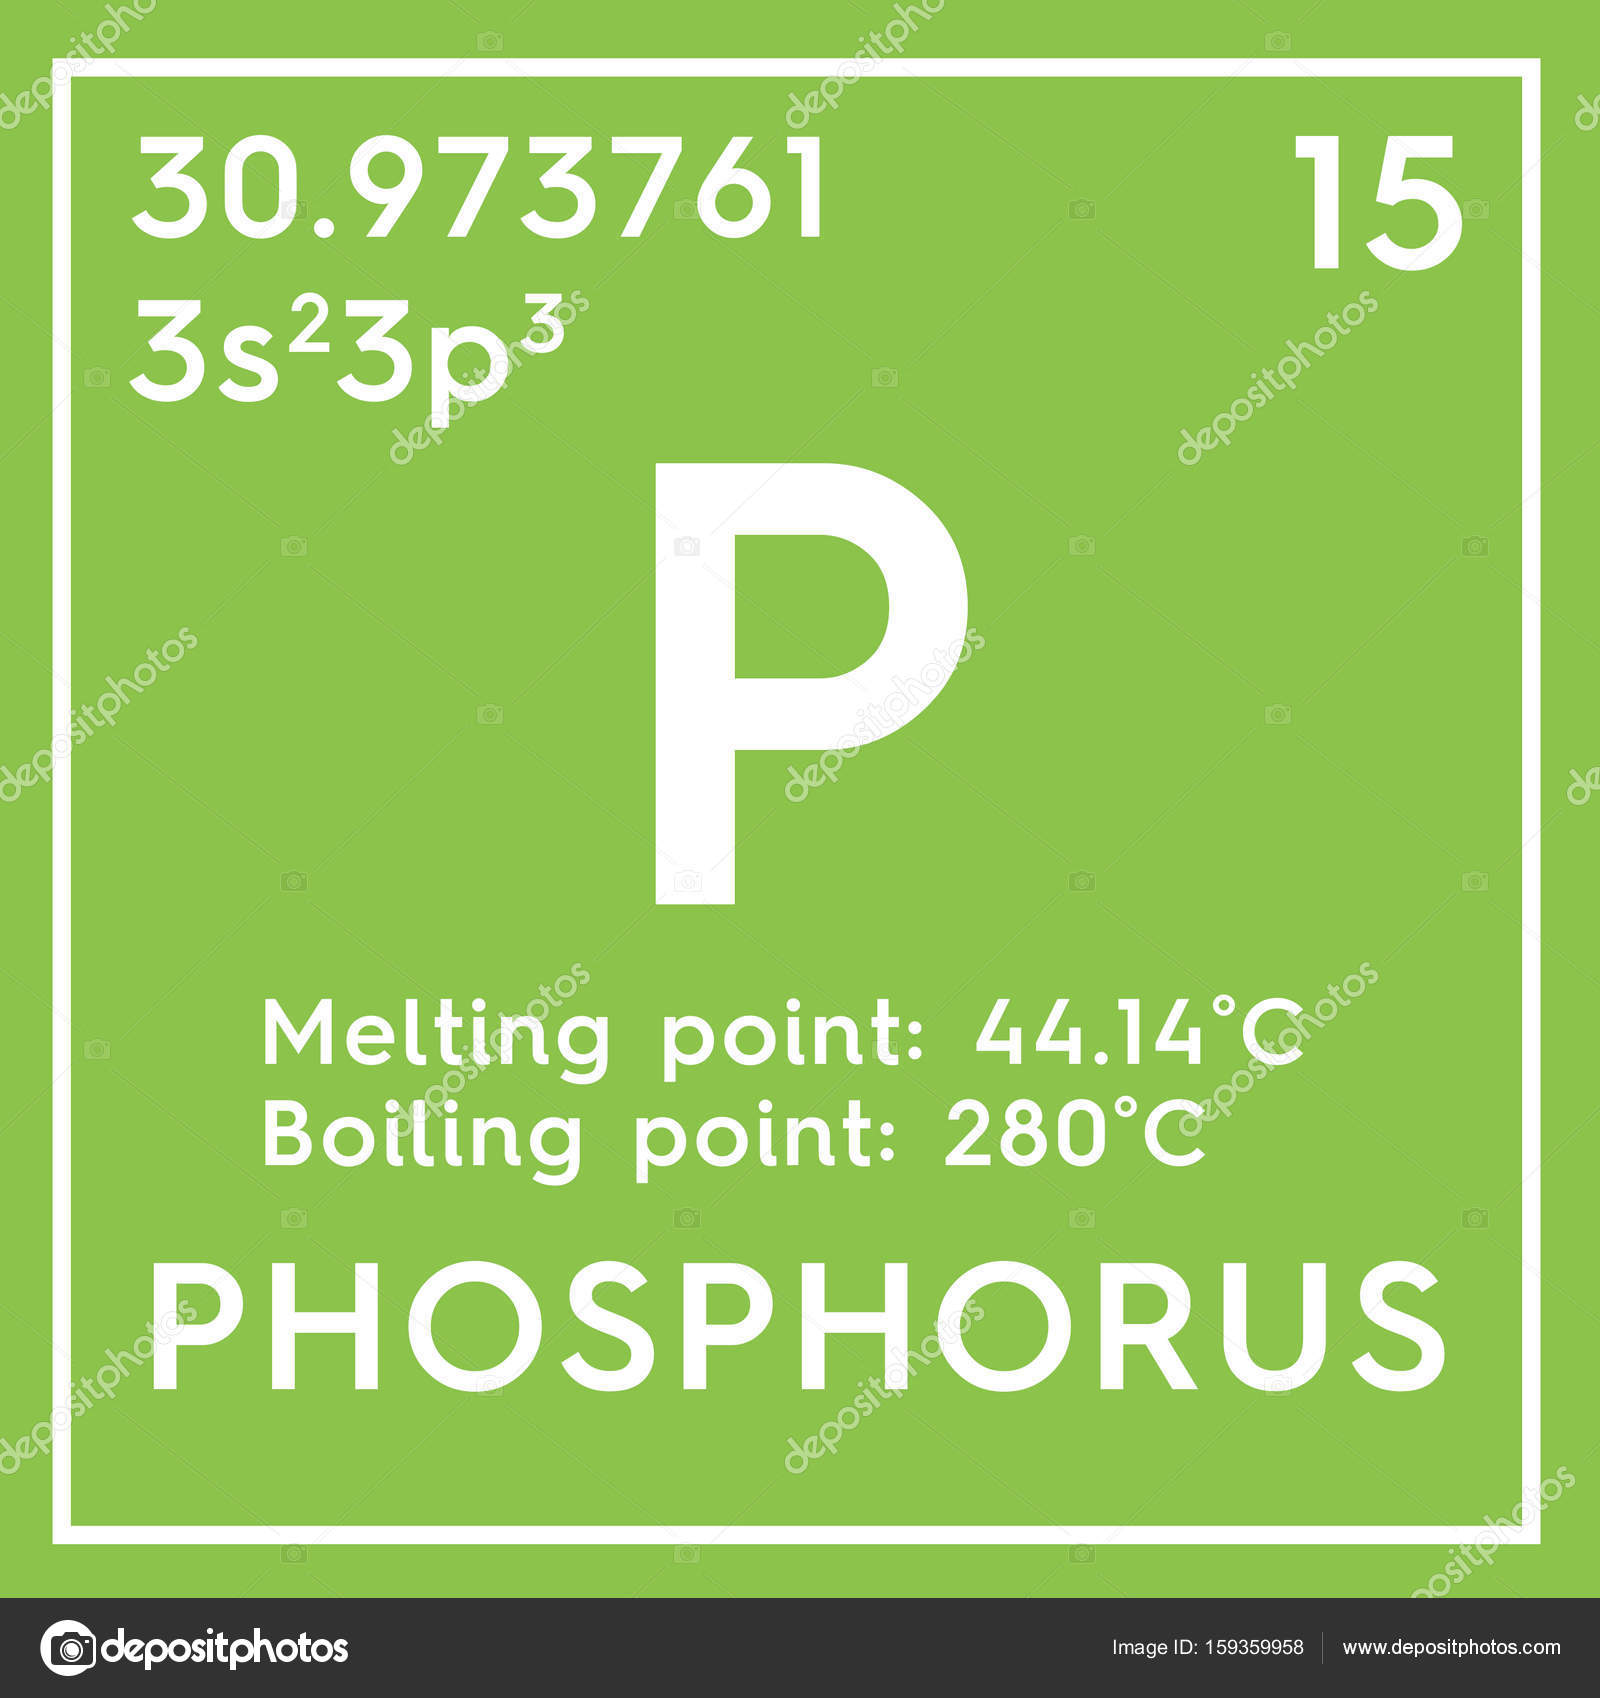 Phosphorus other nonmetals chemical element of mendeleevs phosphorus other nonmetals chemical element of mendeleevs periodic table phosphorus in square cube creative concept photo by sanches812 urtaz Image collections